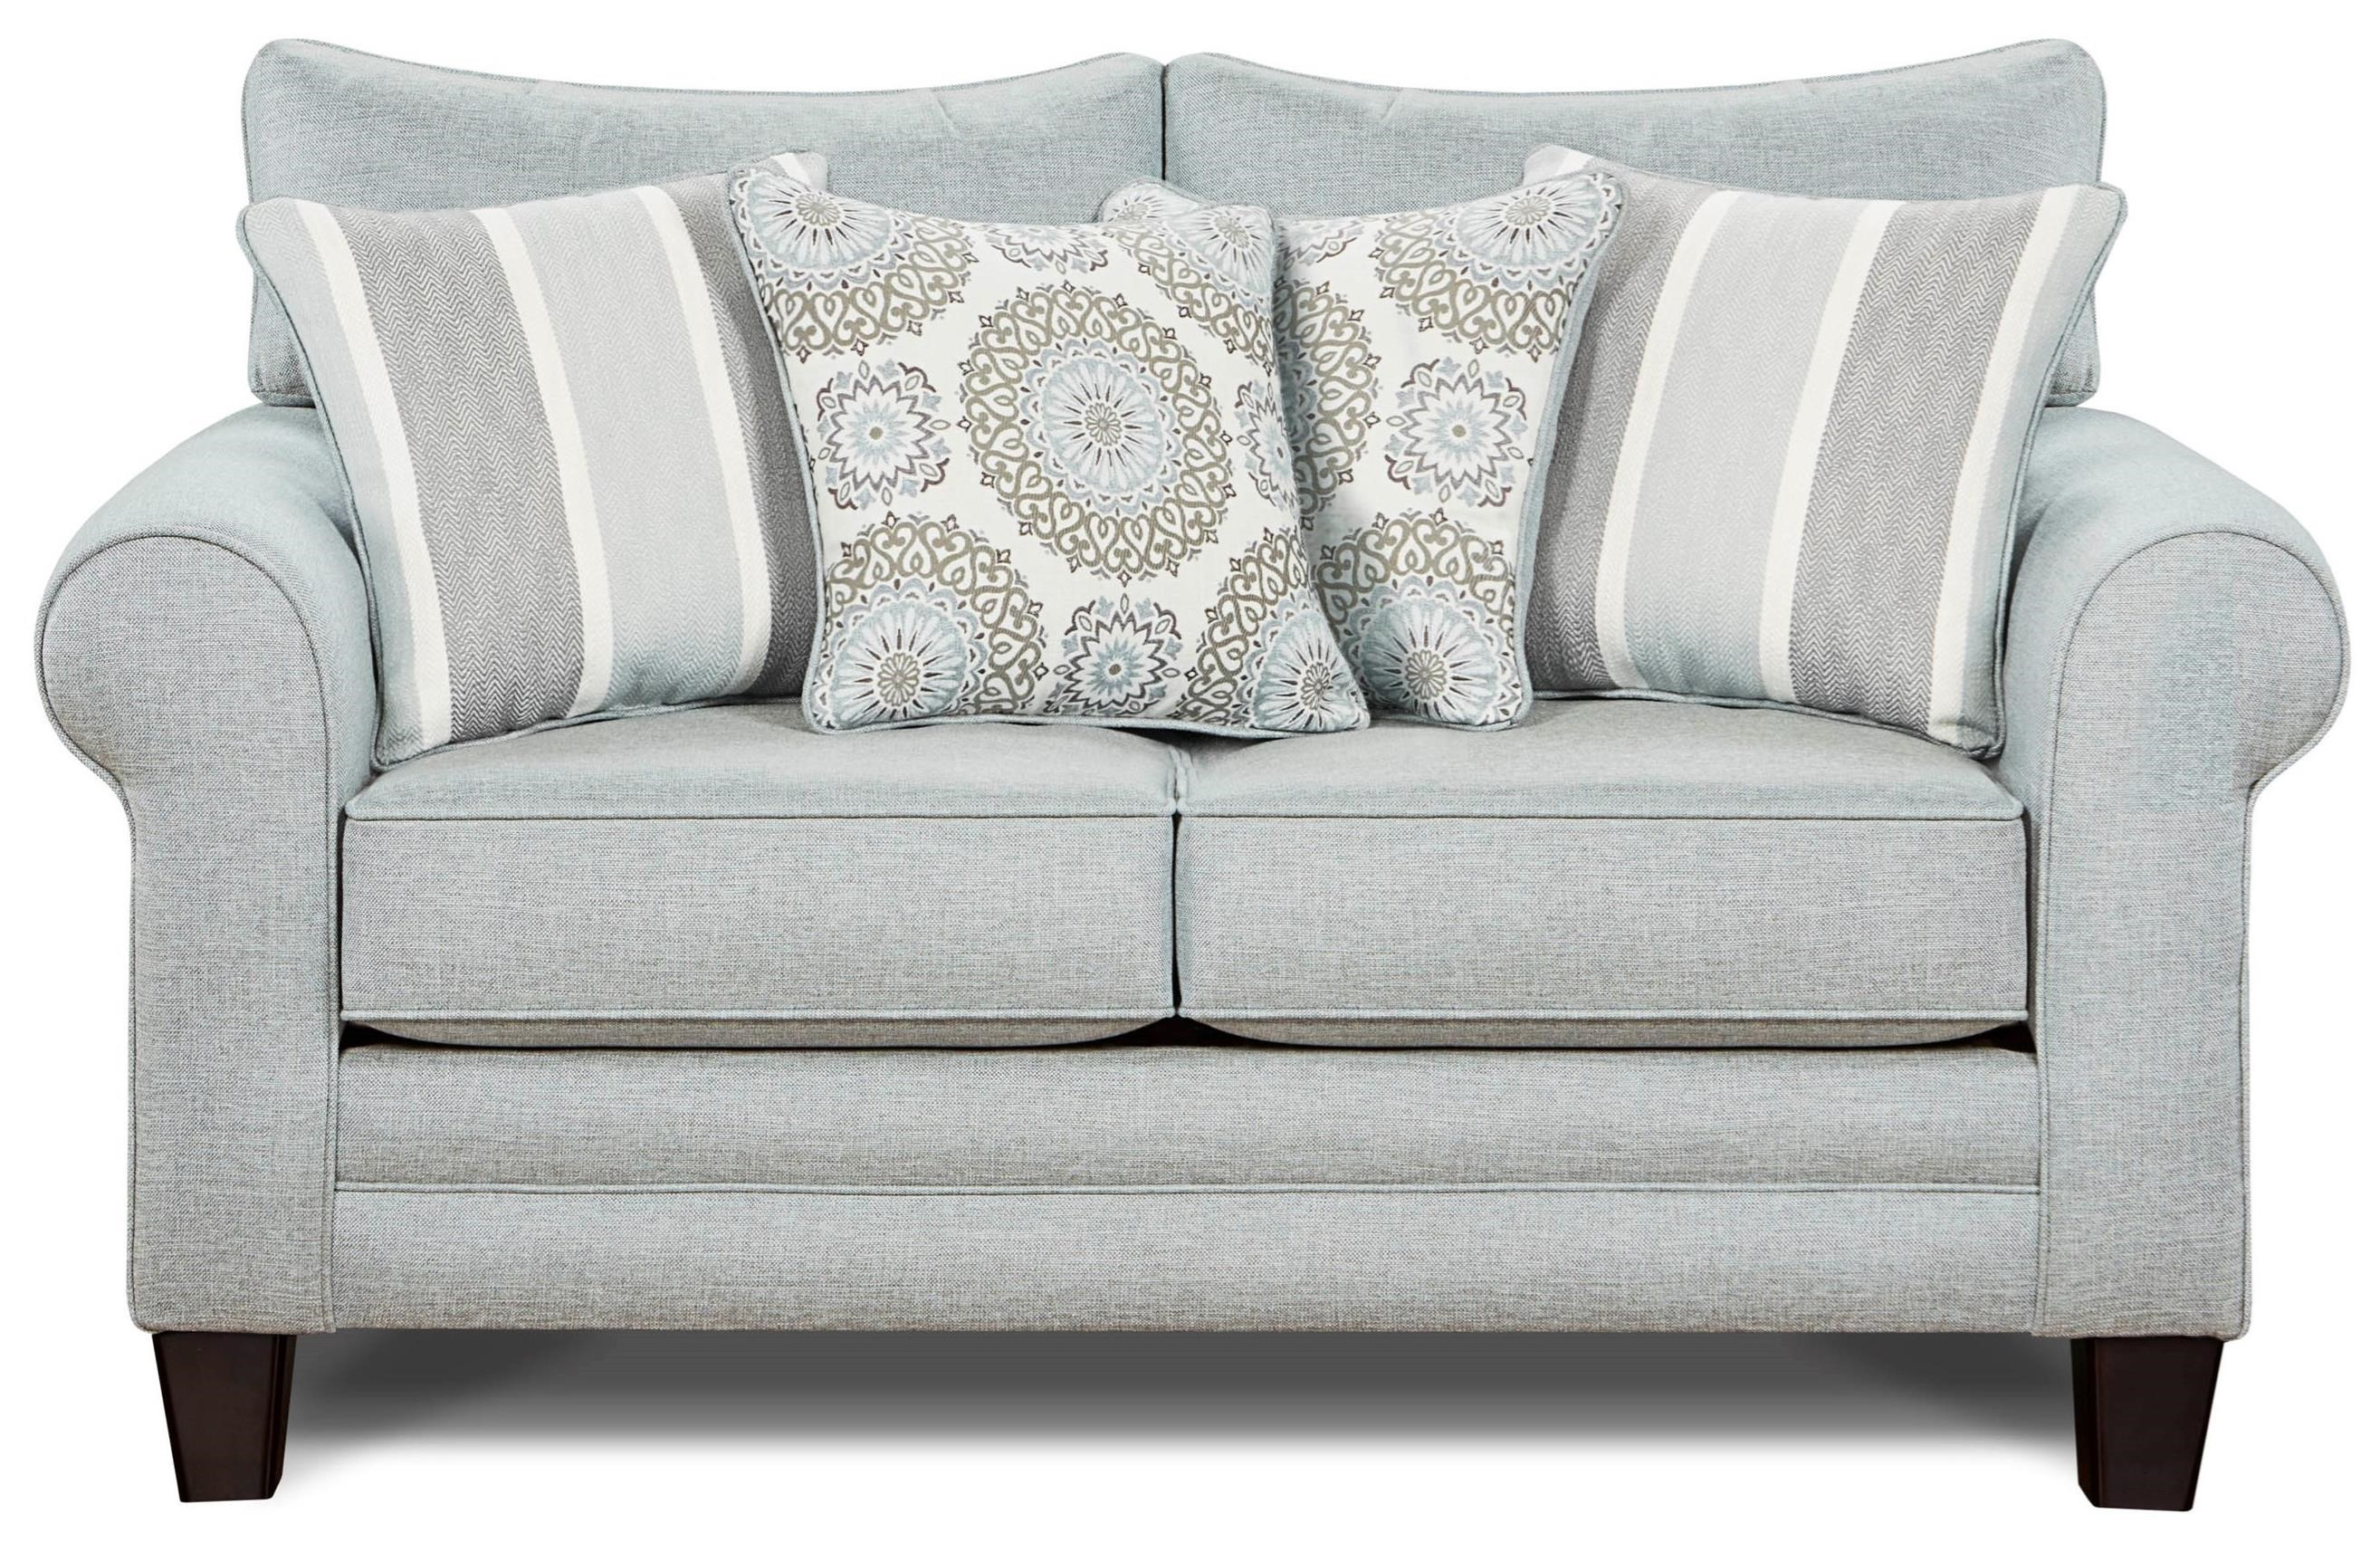 1140 Loveseat by Fusion Furniture at Becker Furniture